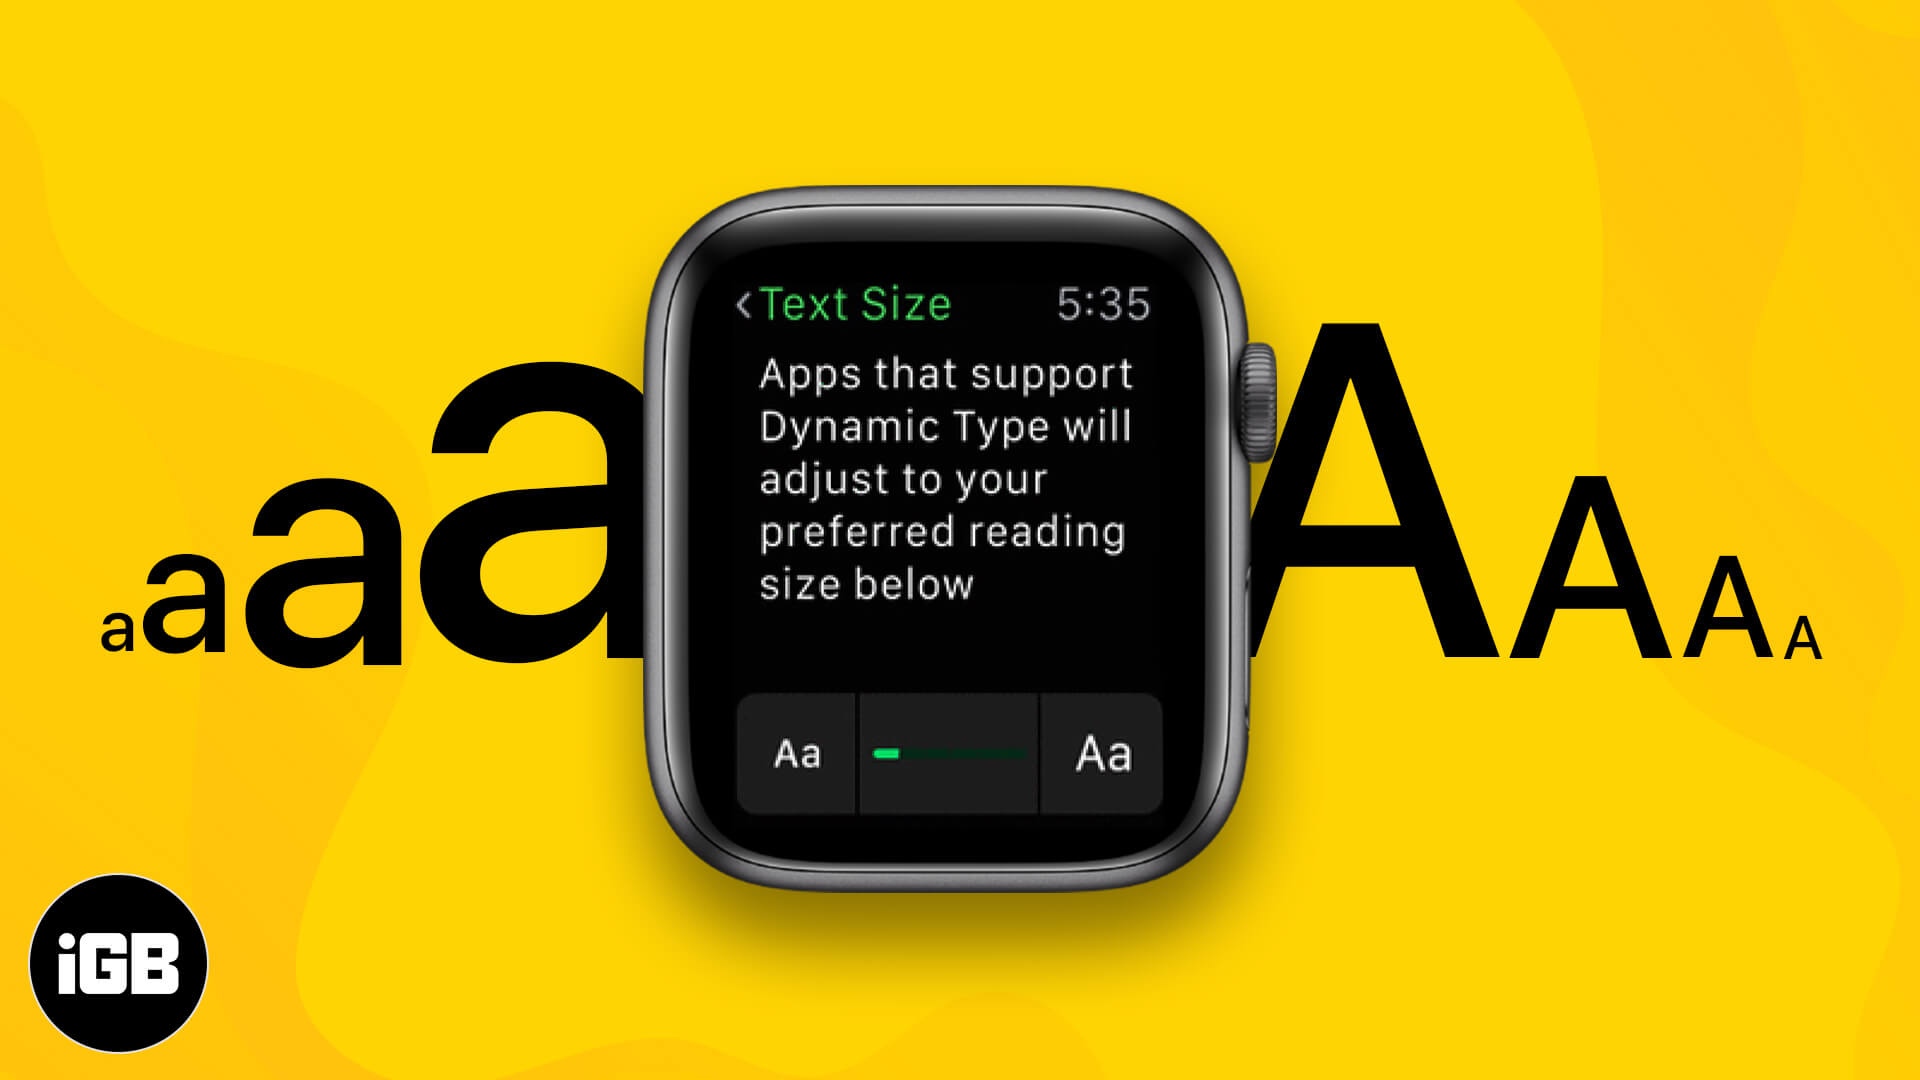 How to increase or change text size on Apple Watch